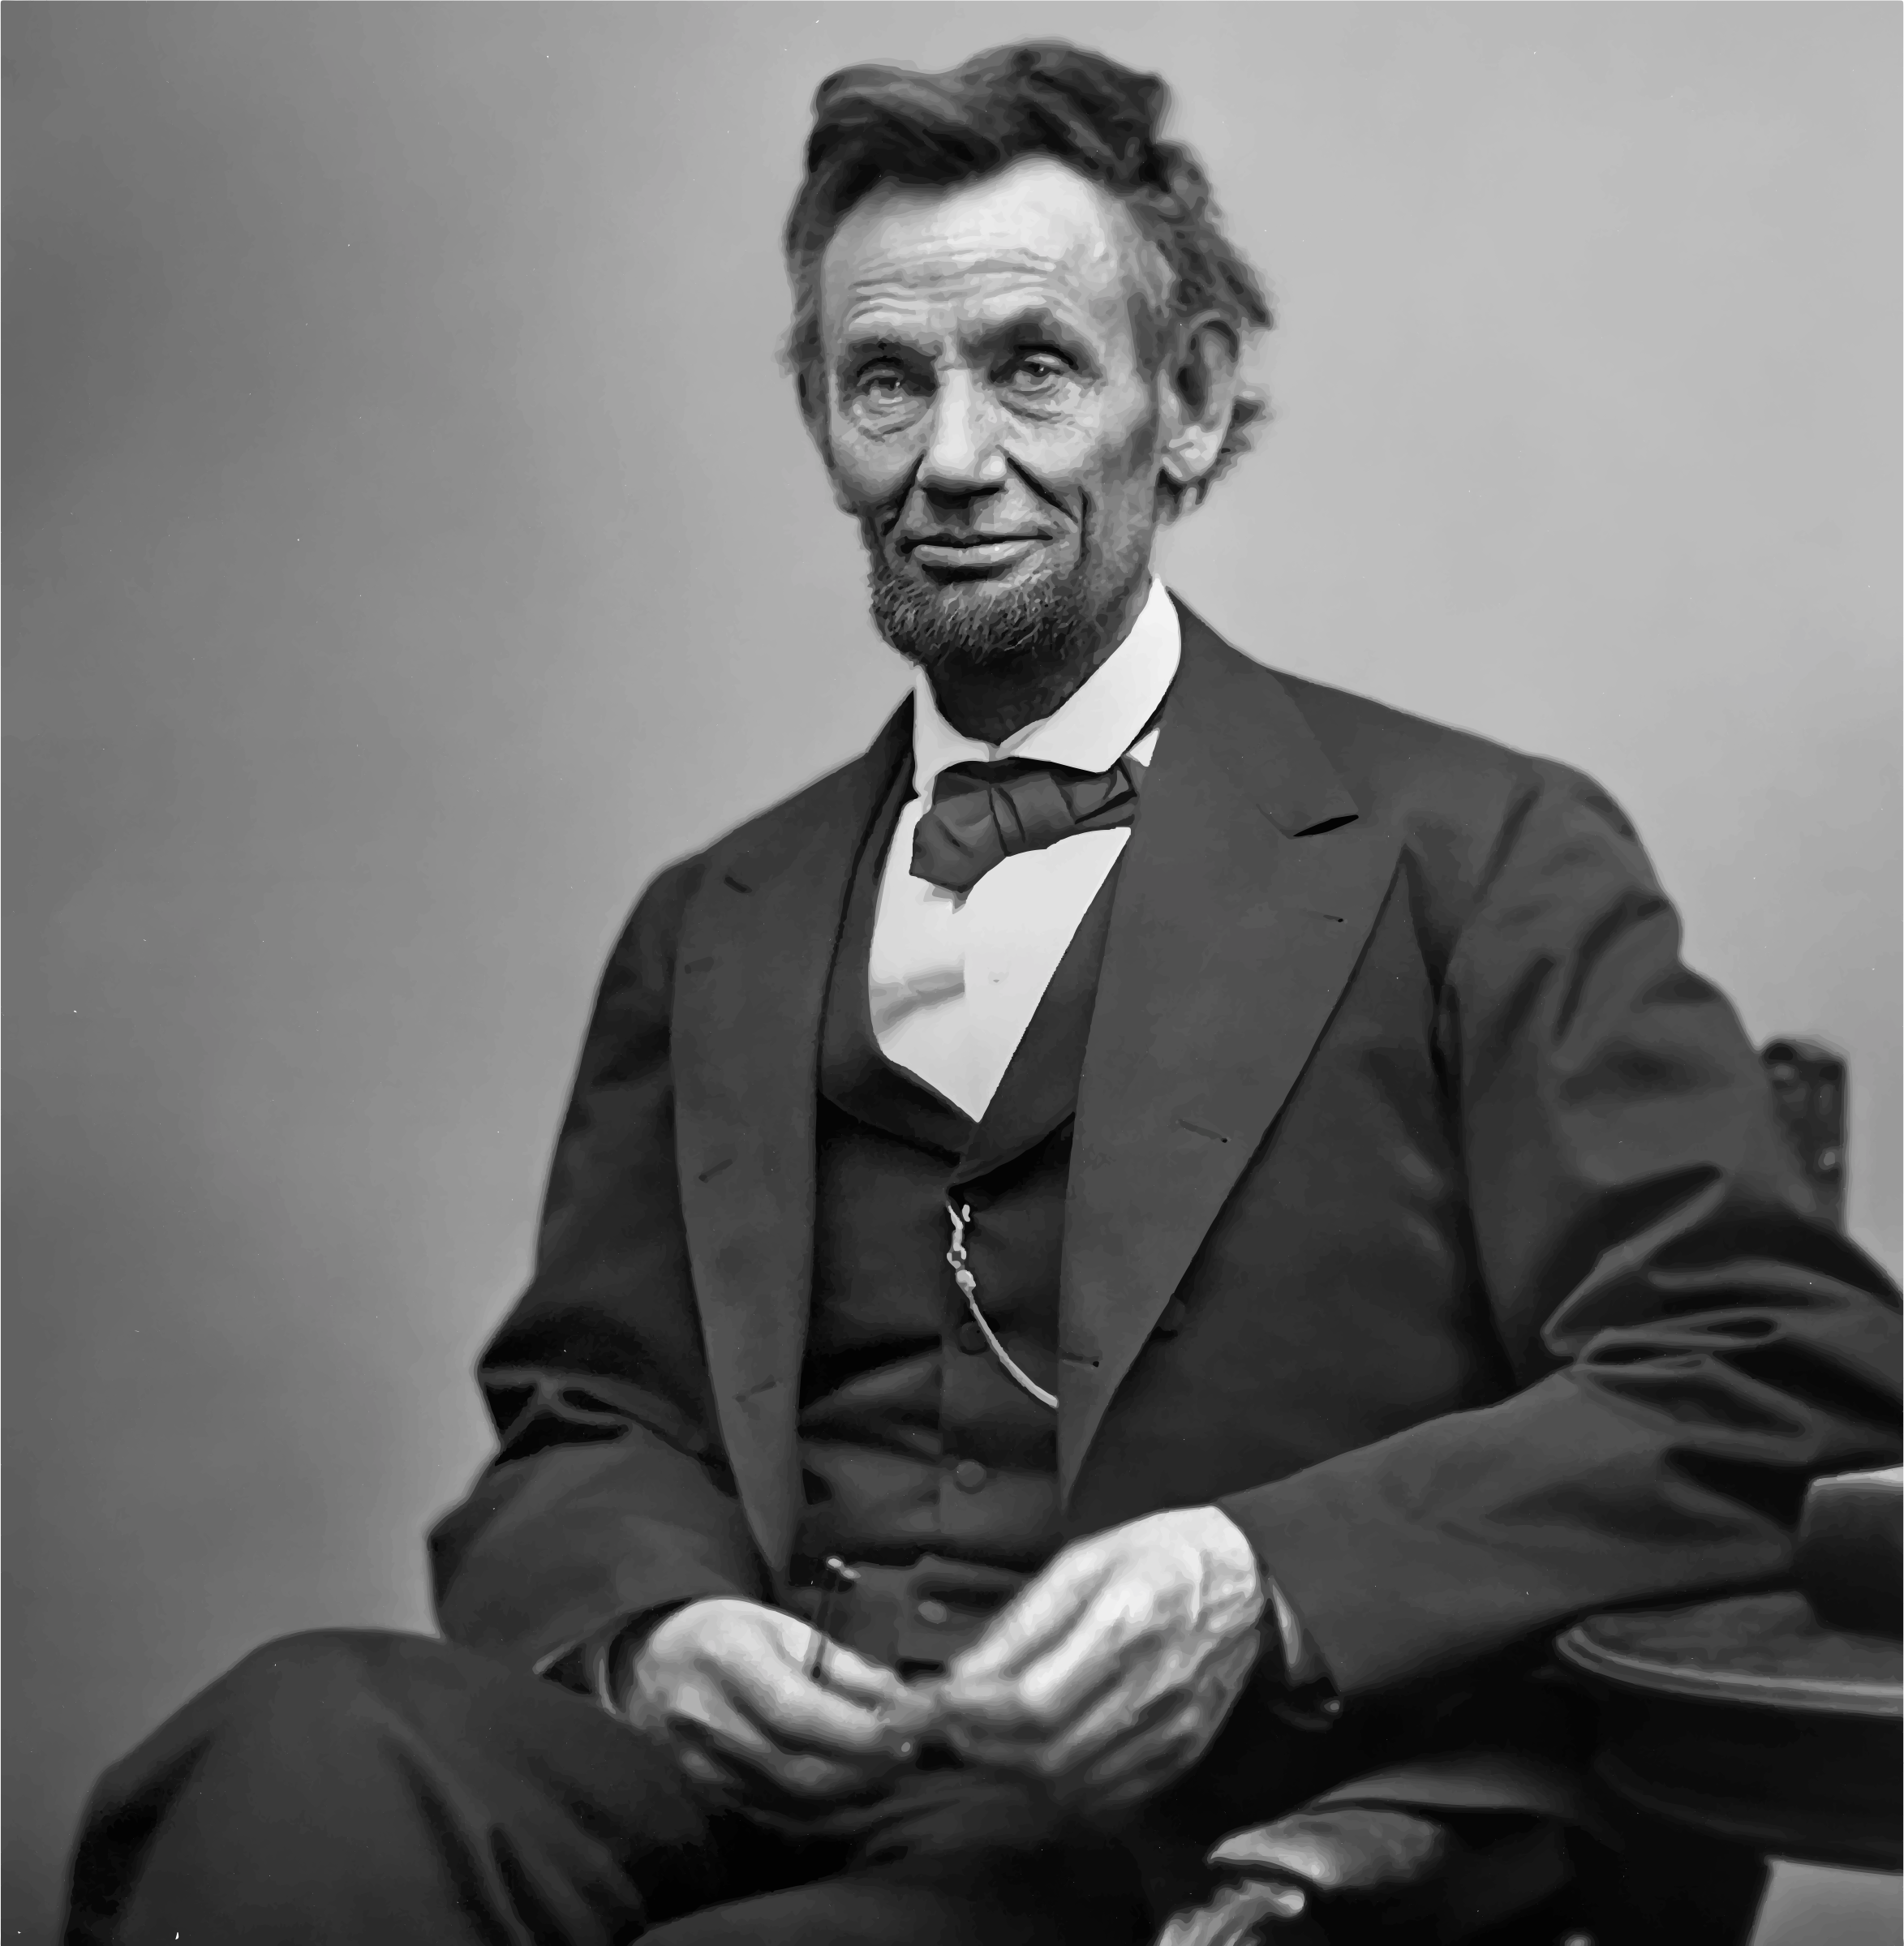 Smiling Abraham Lincoln by GDJ